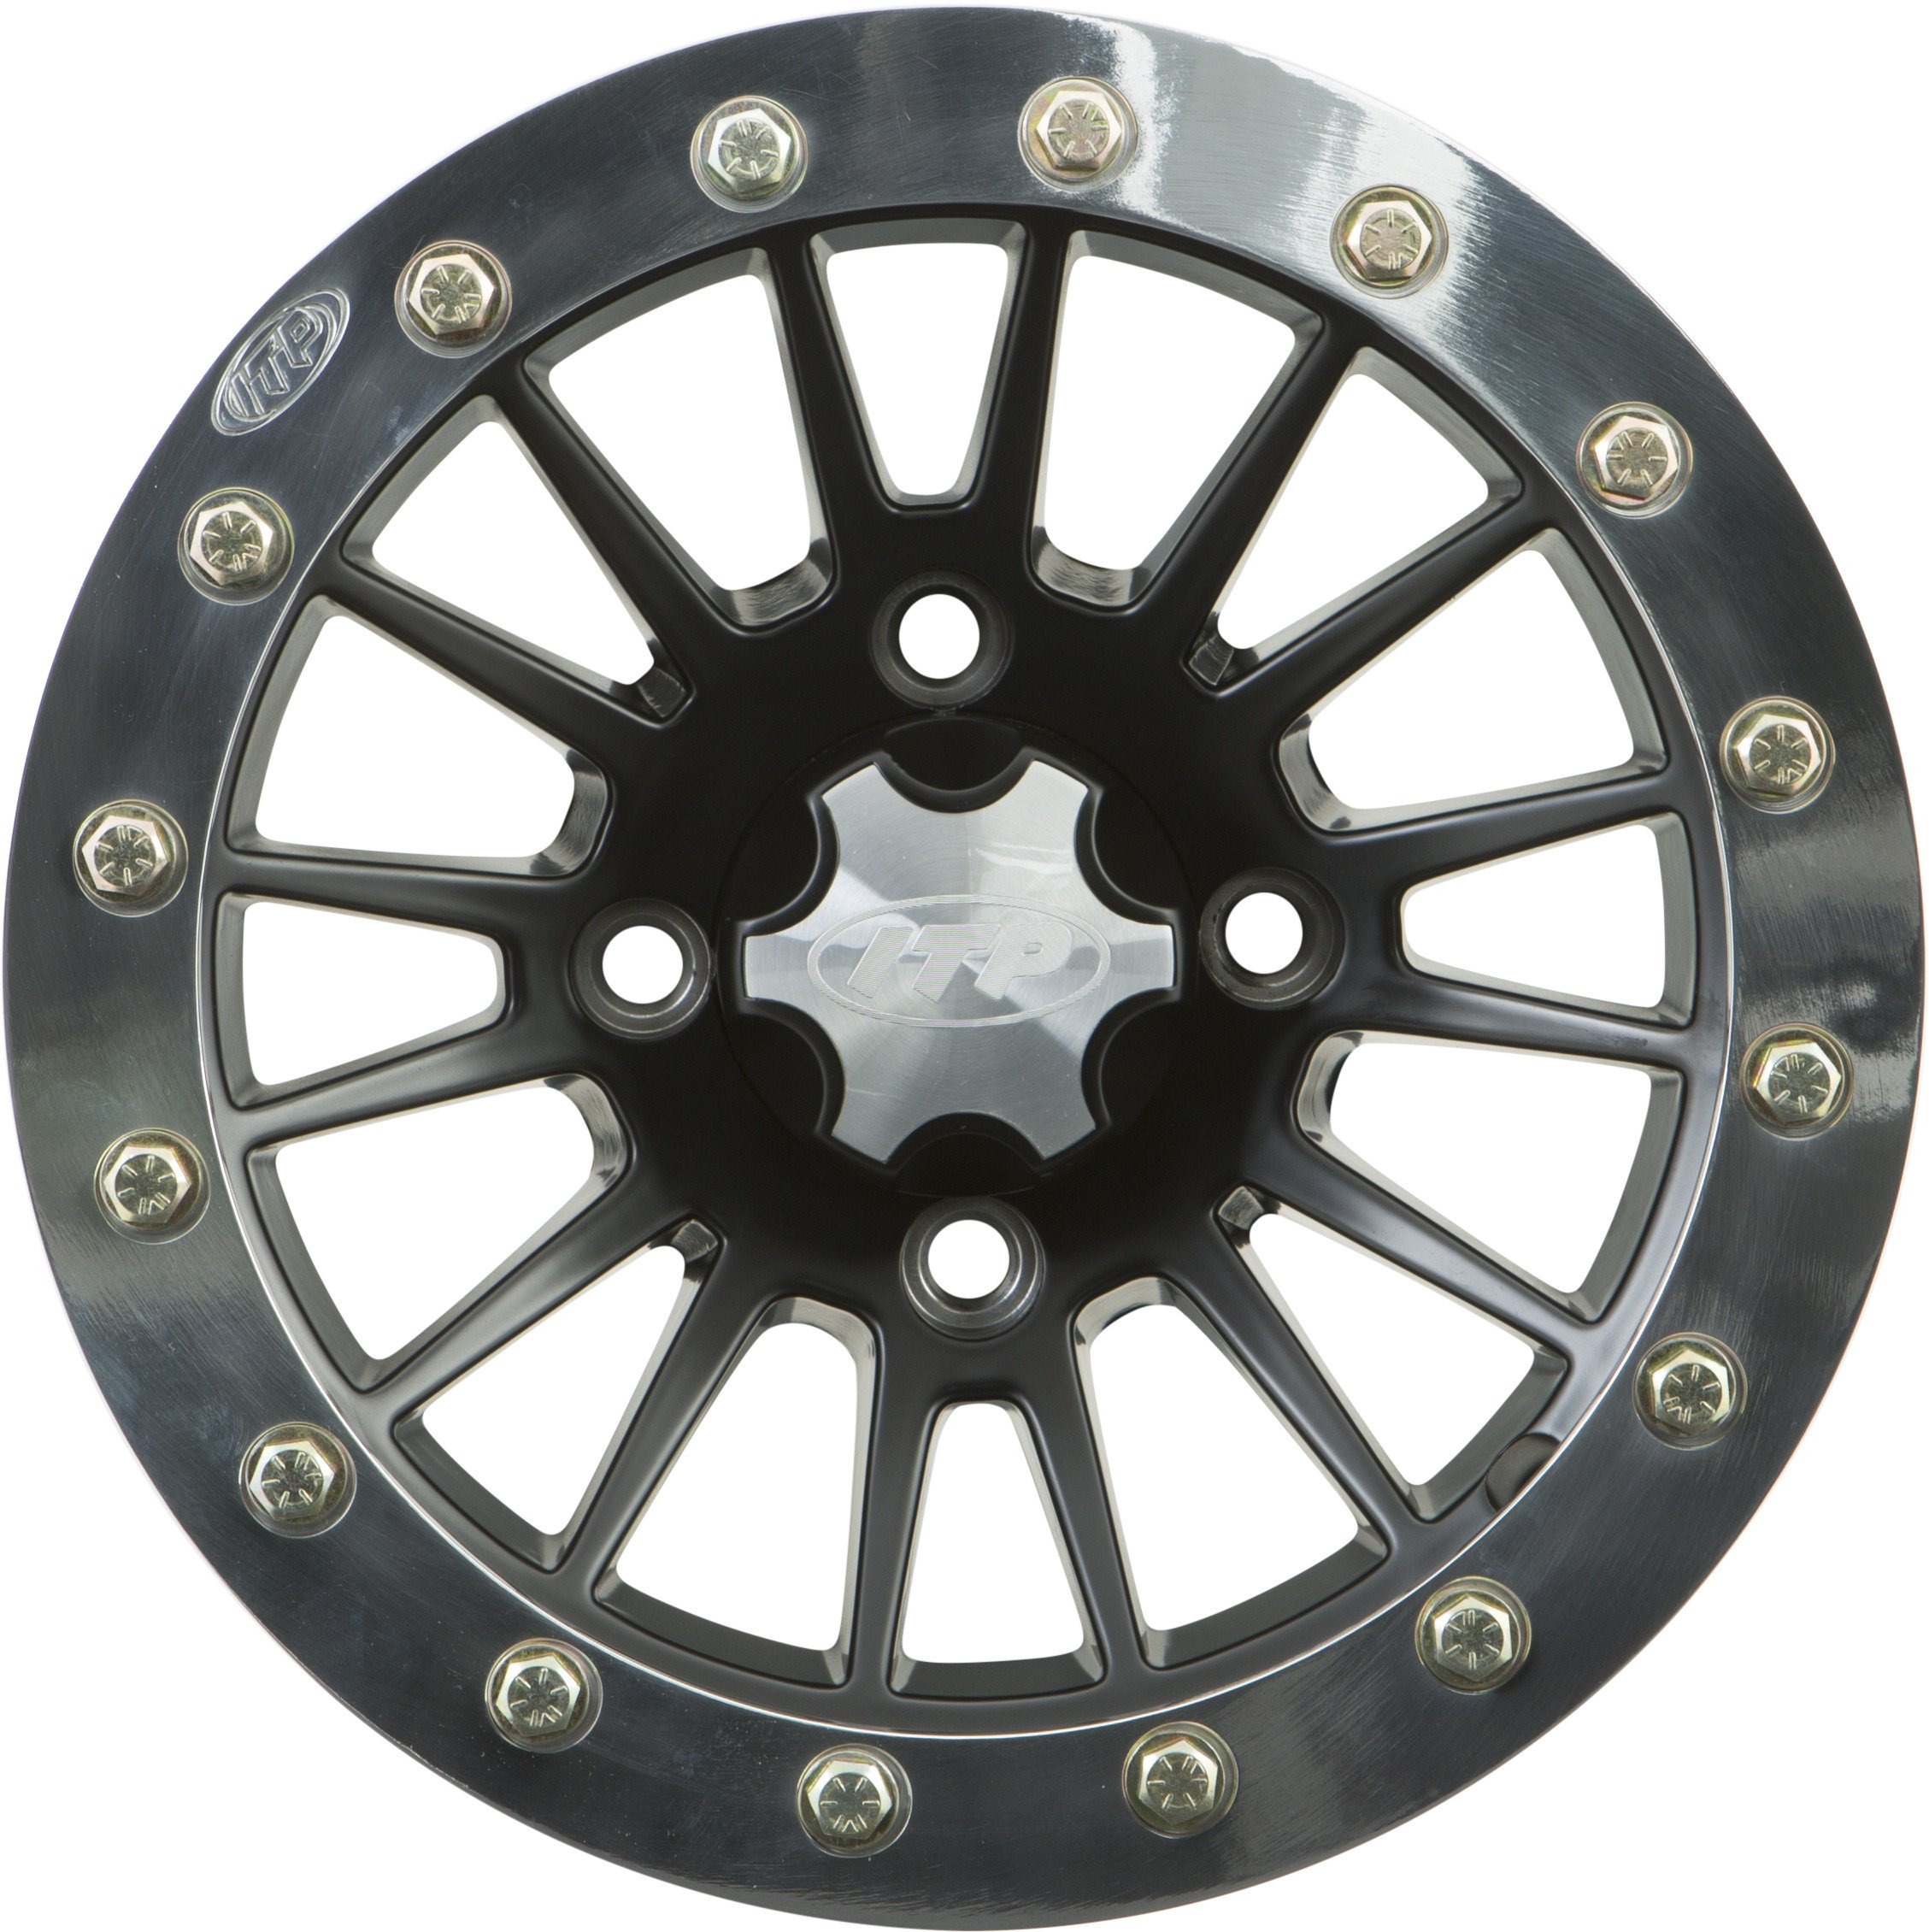 ITP SD Beadlock Machined/Matte Black ATV Wheel Front/Rear 14x7 4/156 - (4+3) by ITP (Image #1)